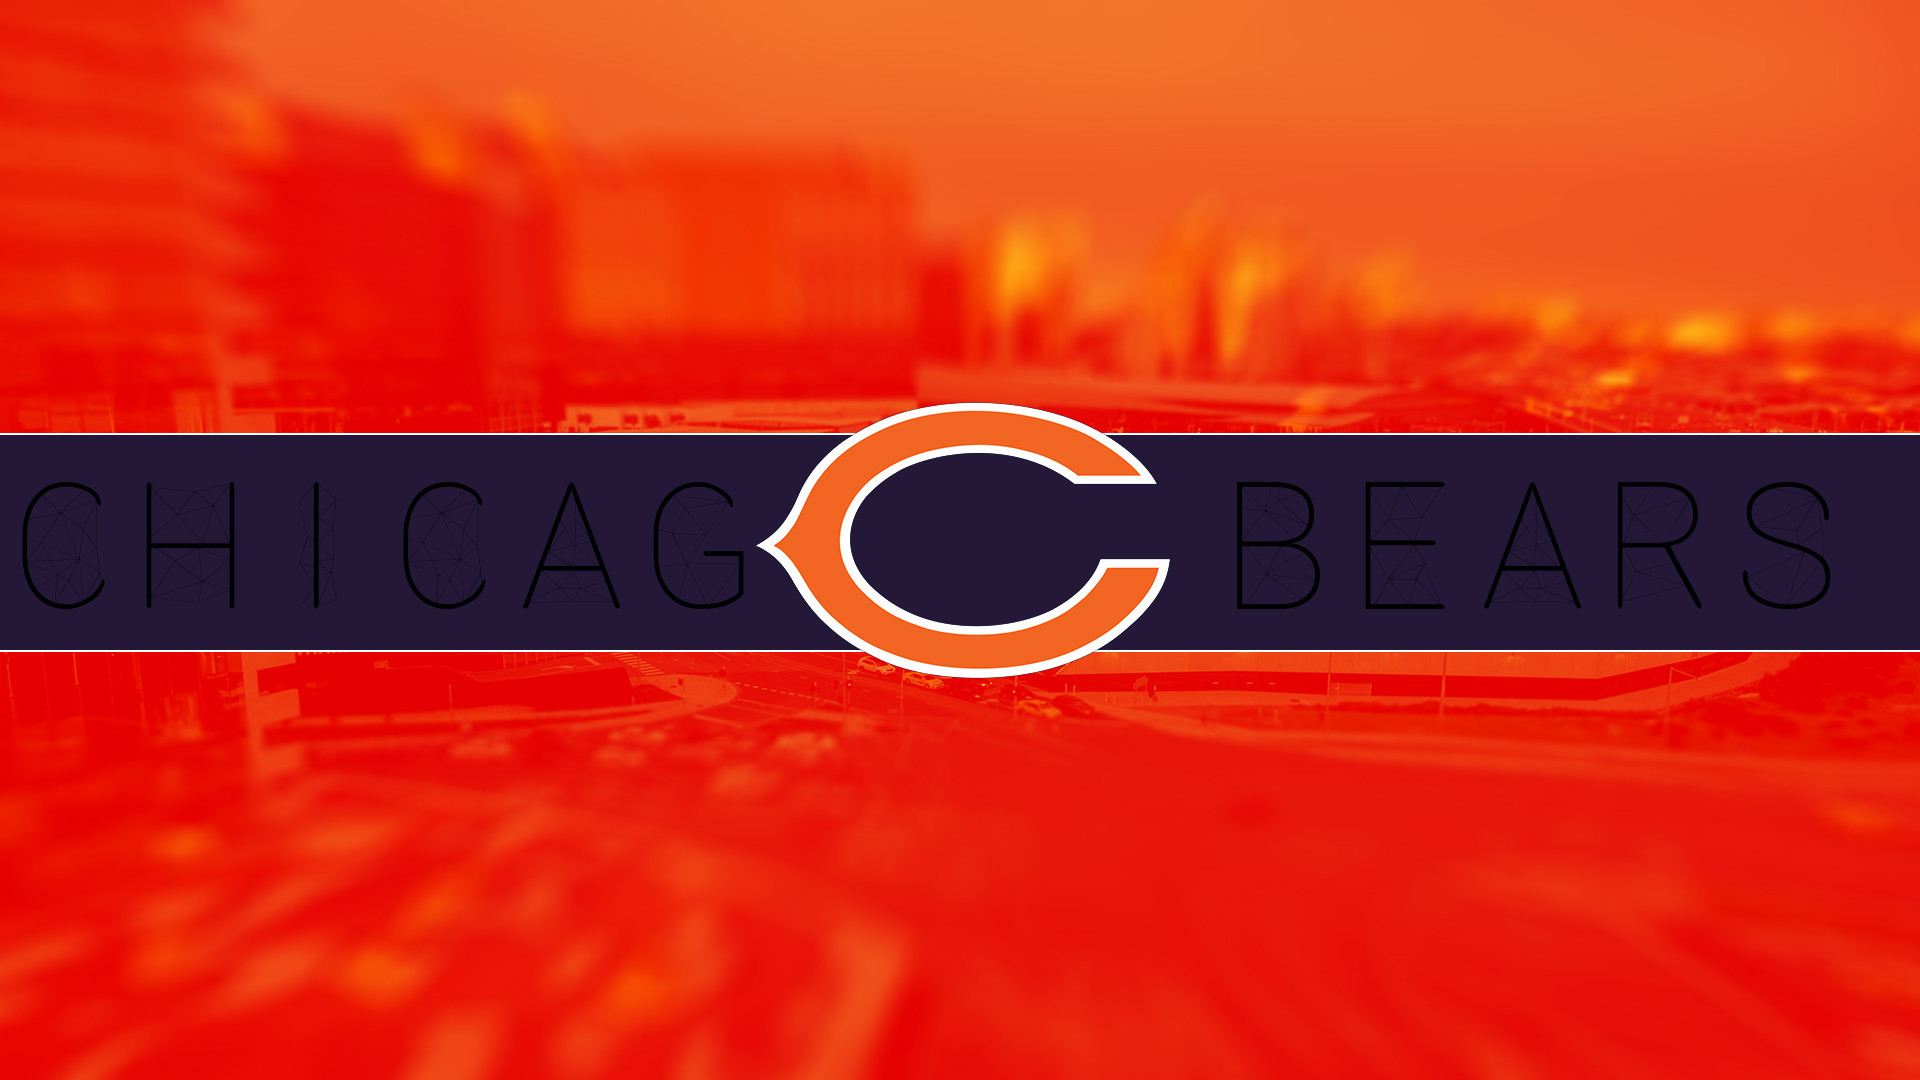 1920x1080 Chicago Bears Wallpaper Preseason Start 2018 - Image #4191 - Licence: Free  for Personal